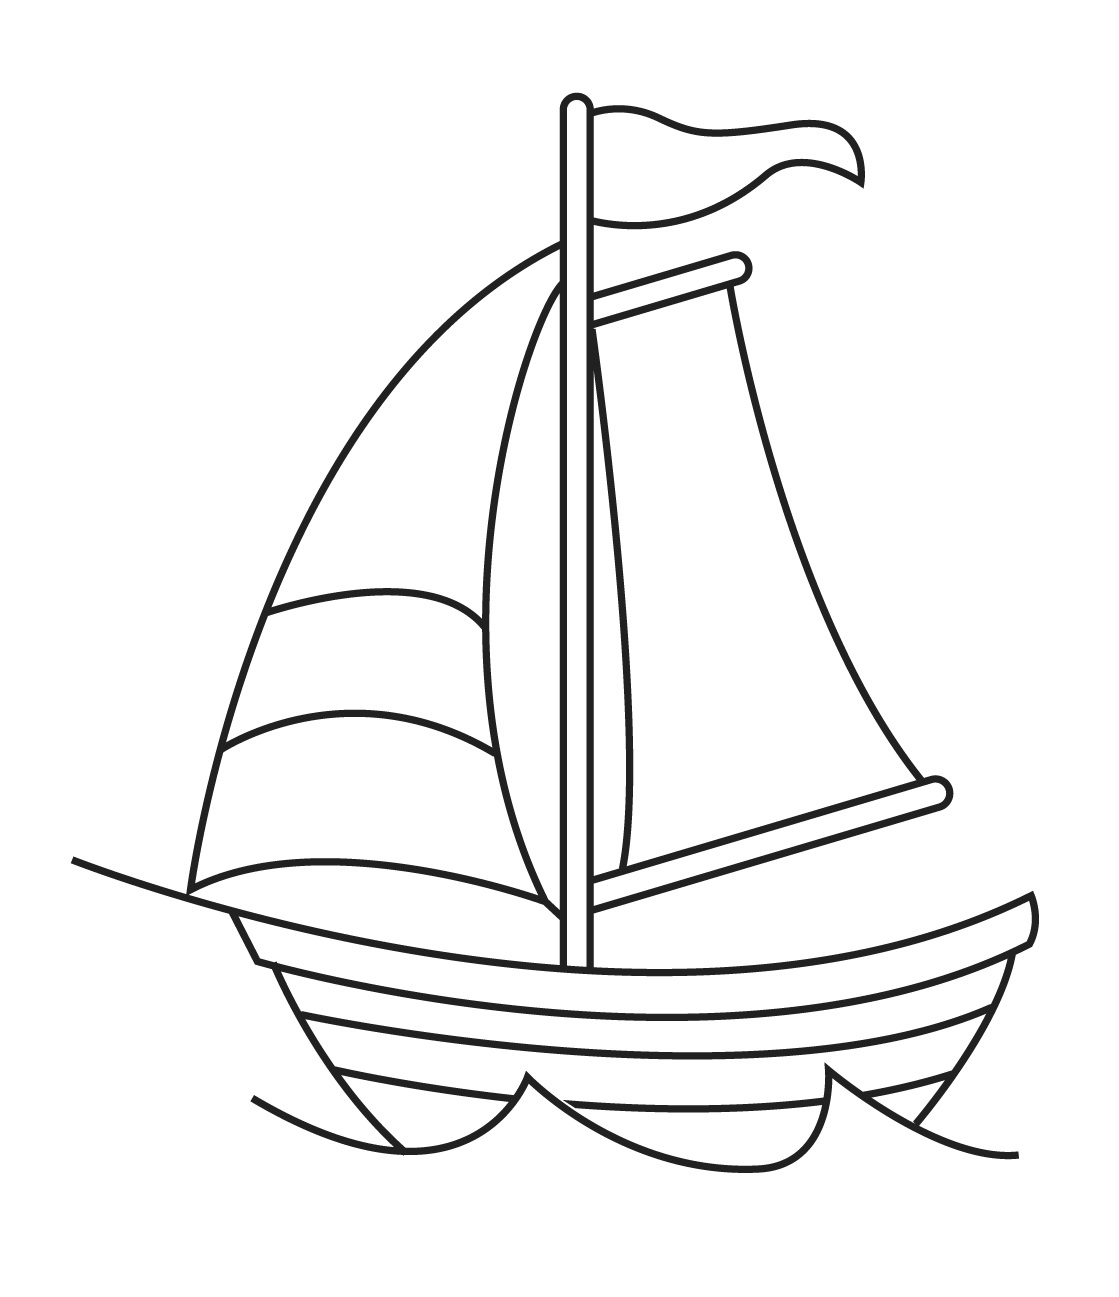 png free download Boat images at paintingvalley. Boats drawing basic